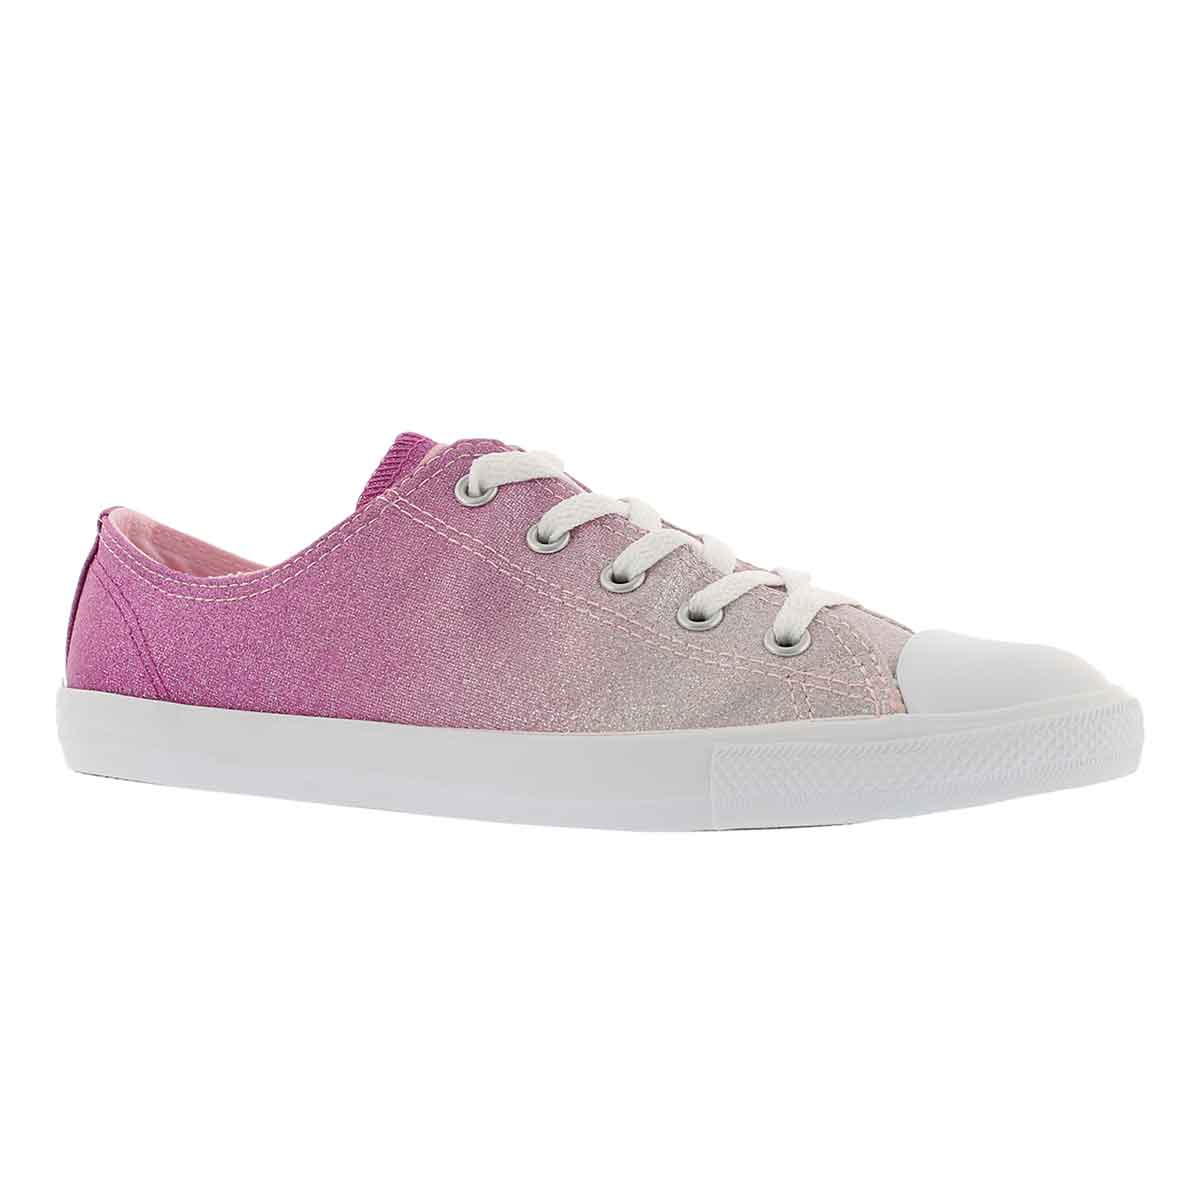 Women's CT ALL STAR DAINTY OMBRE metallic sneakers